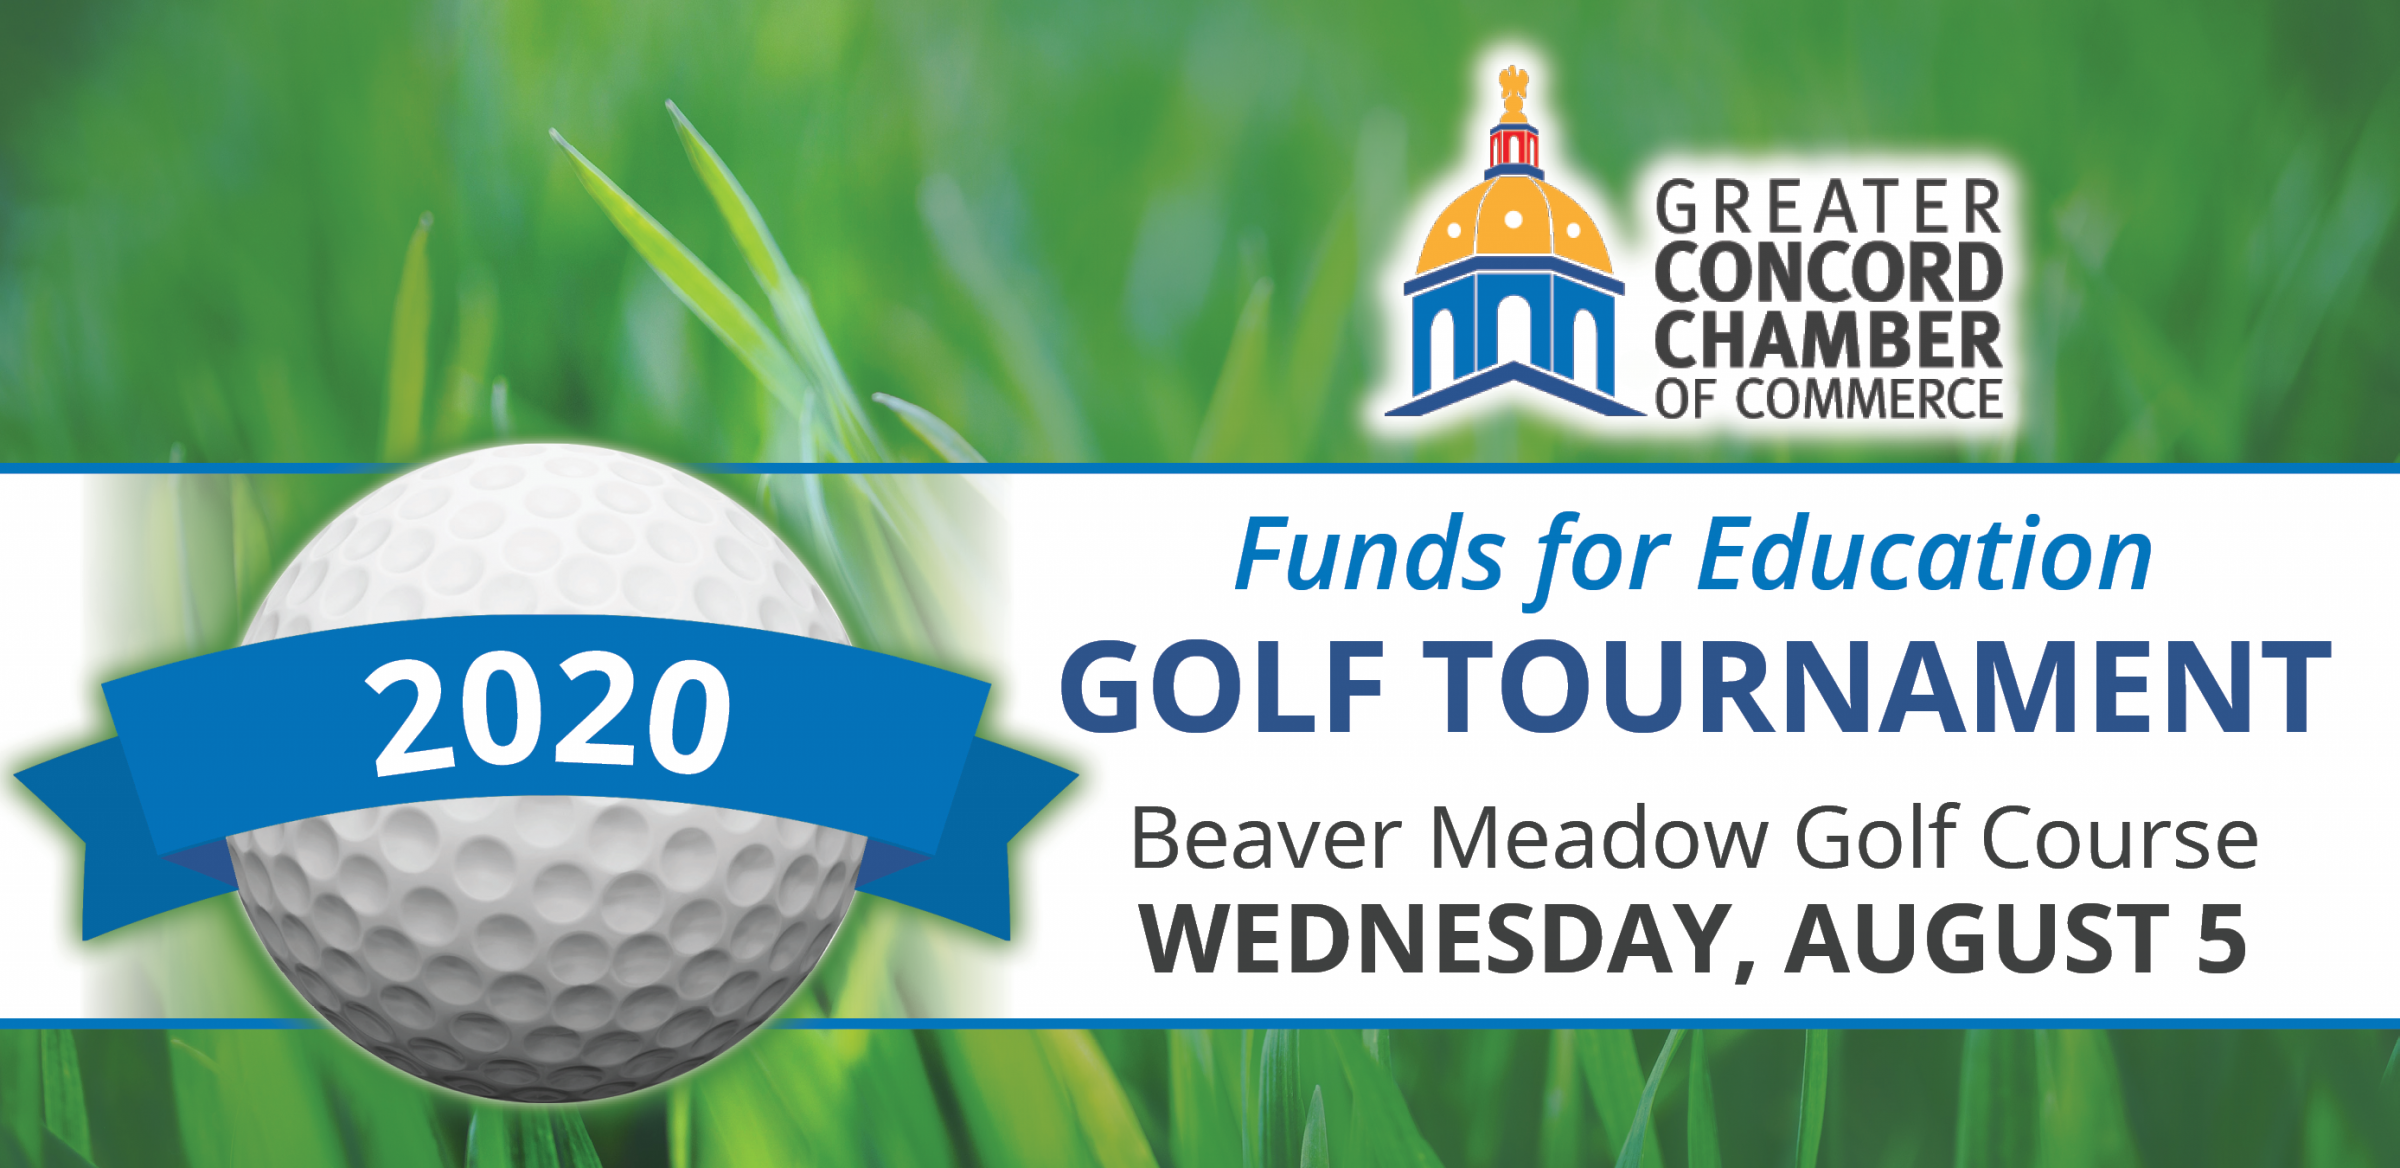 Graphic for 2020 Funds for Education Golf Tournament on Wednesday, August 5